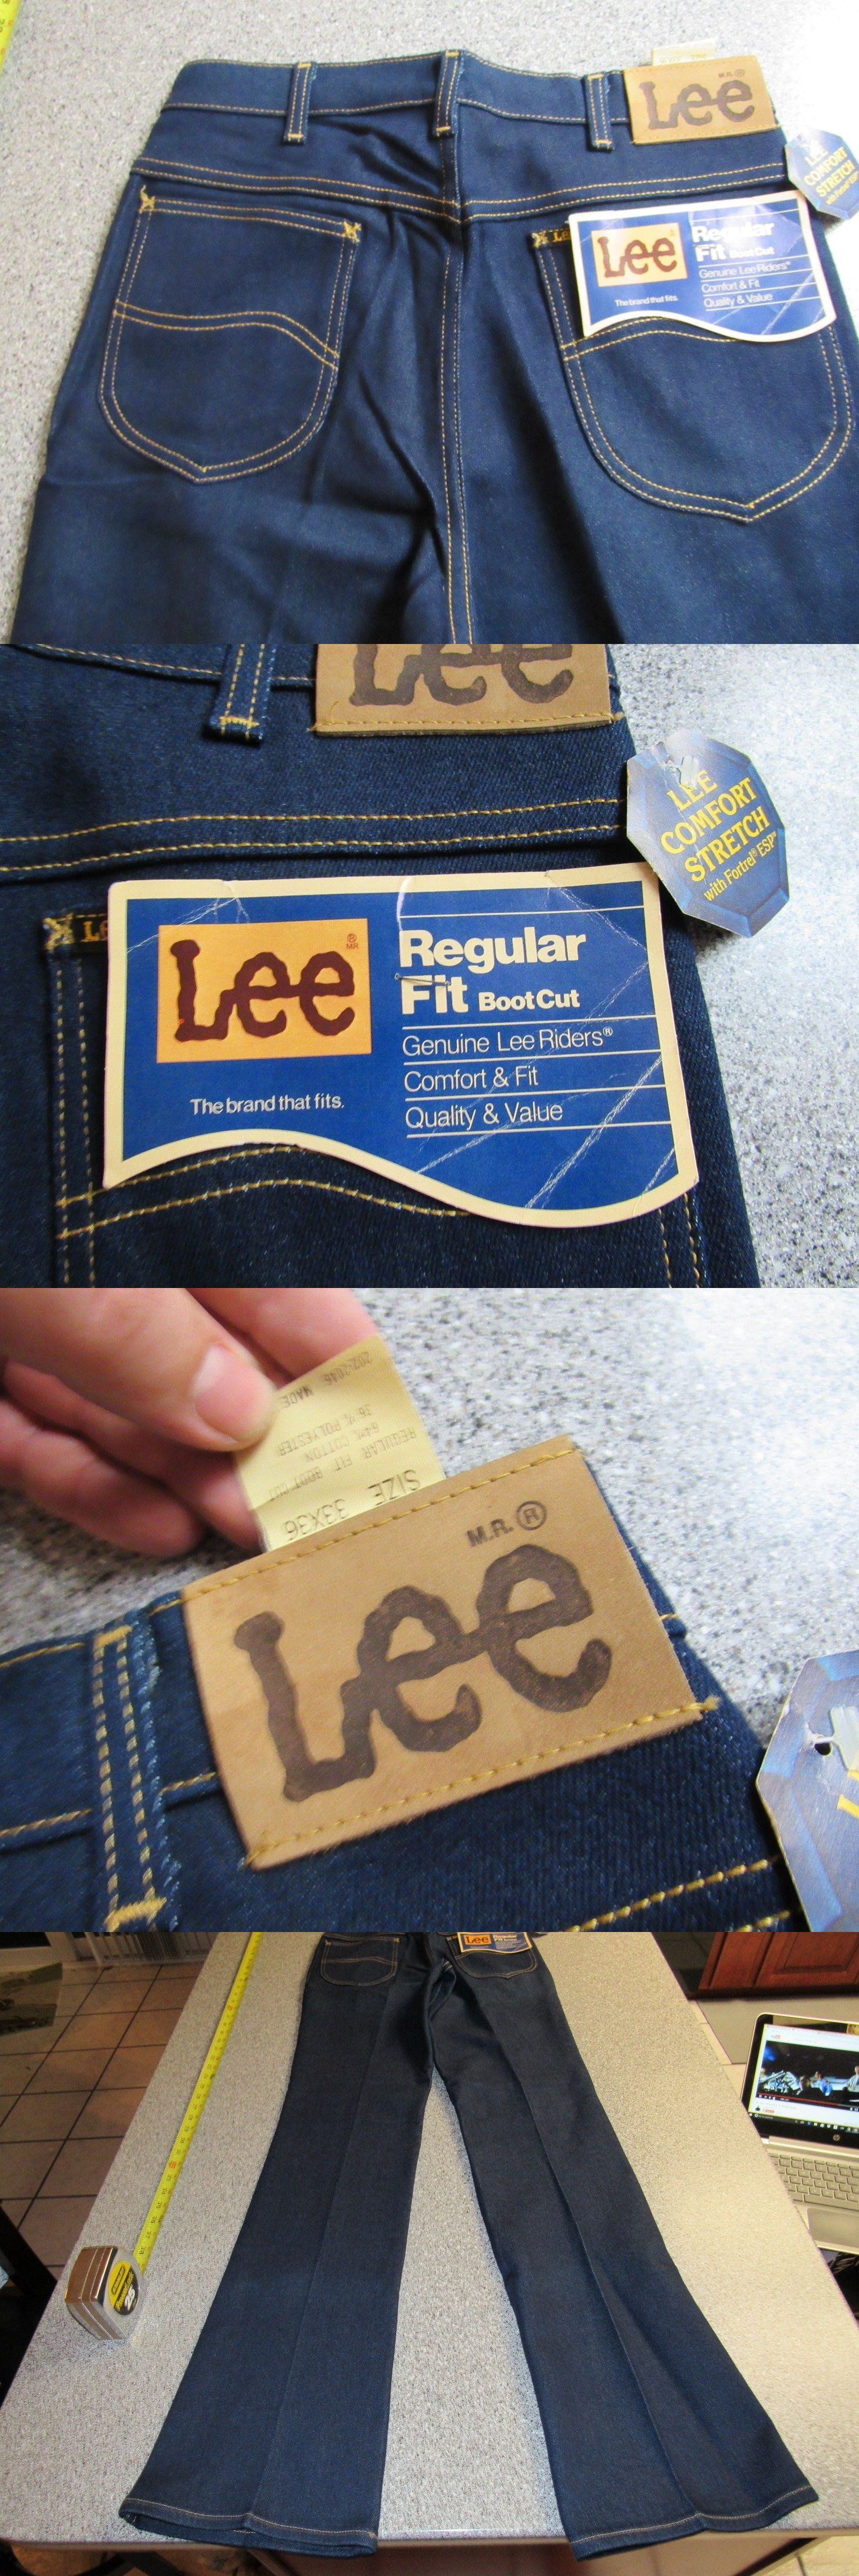 lee on ads comforter comfort waist jeans behance gallery